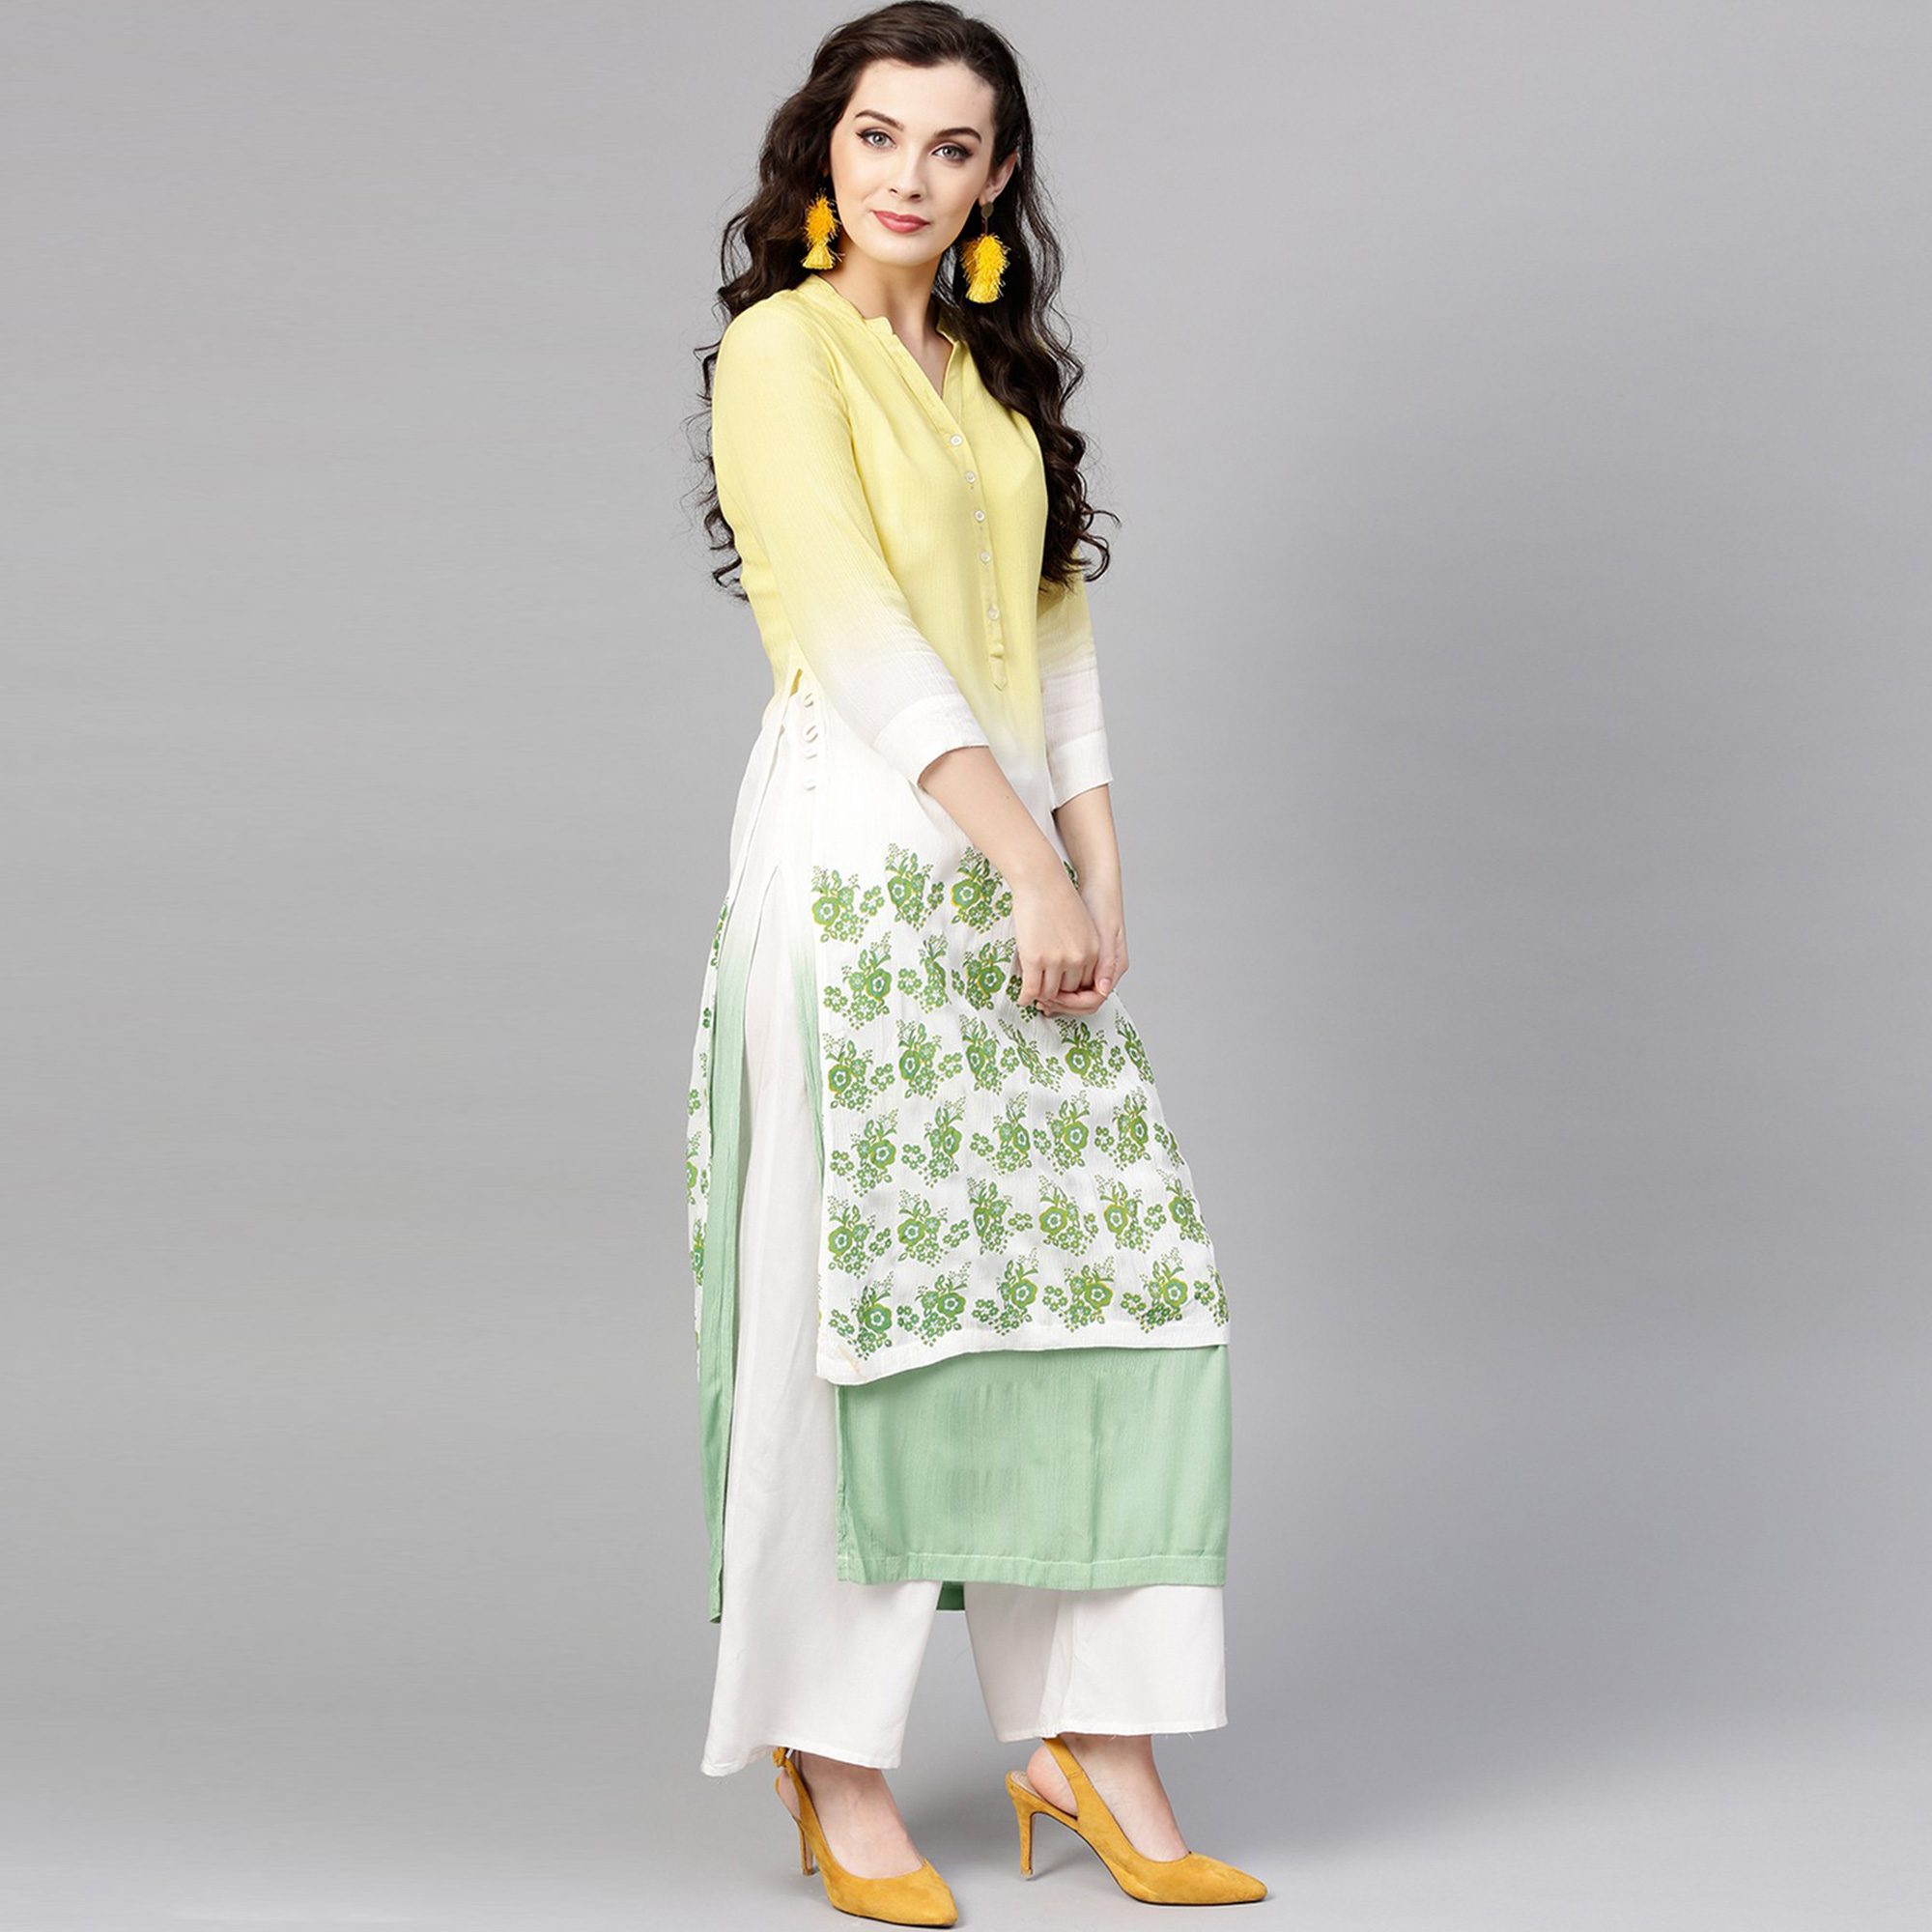 Sophisticated Yellow-Green Colored Casual Wear Floral Printed Rayon-Crepe Kurti